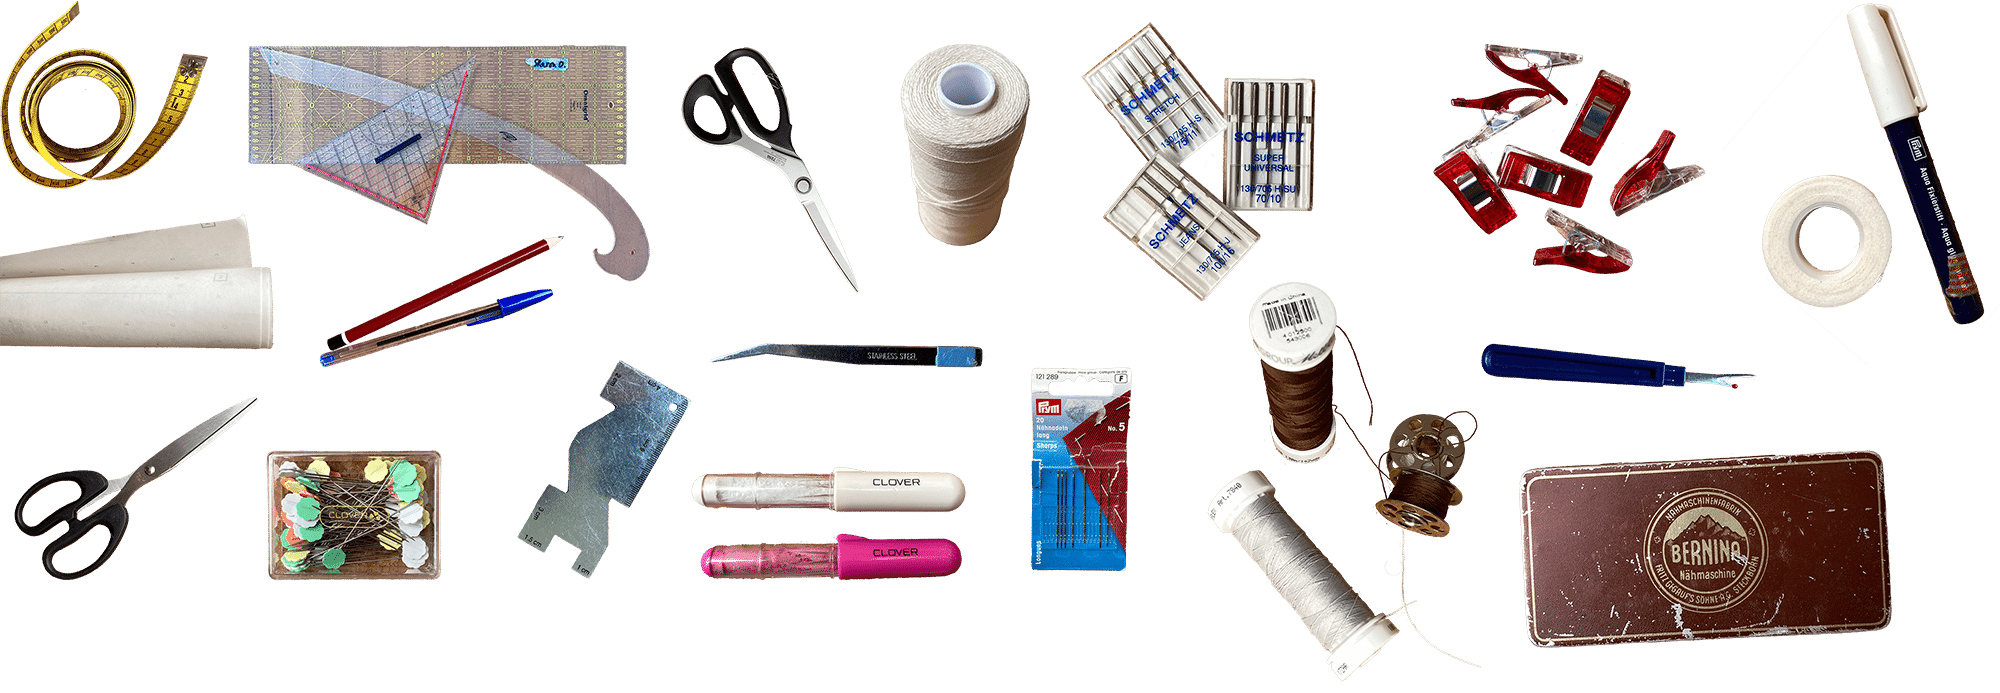 Tools you need to get started with sewing